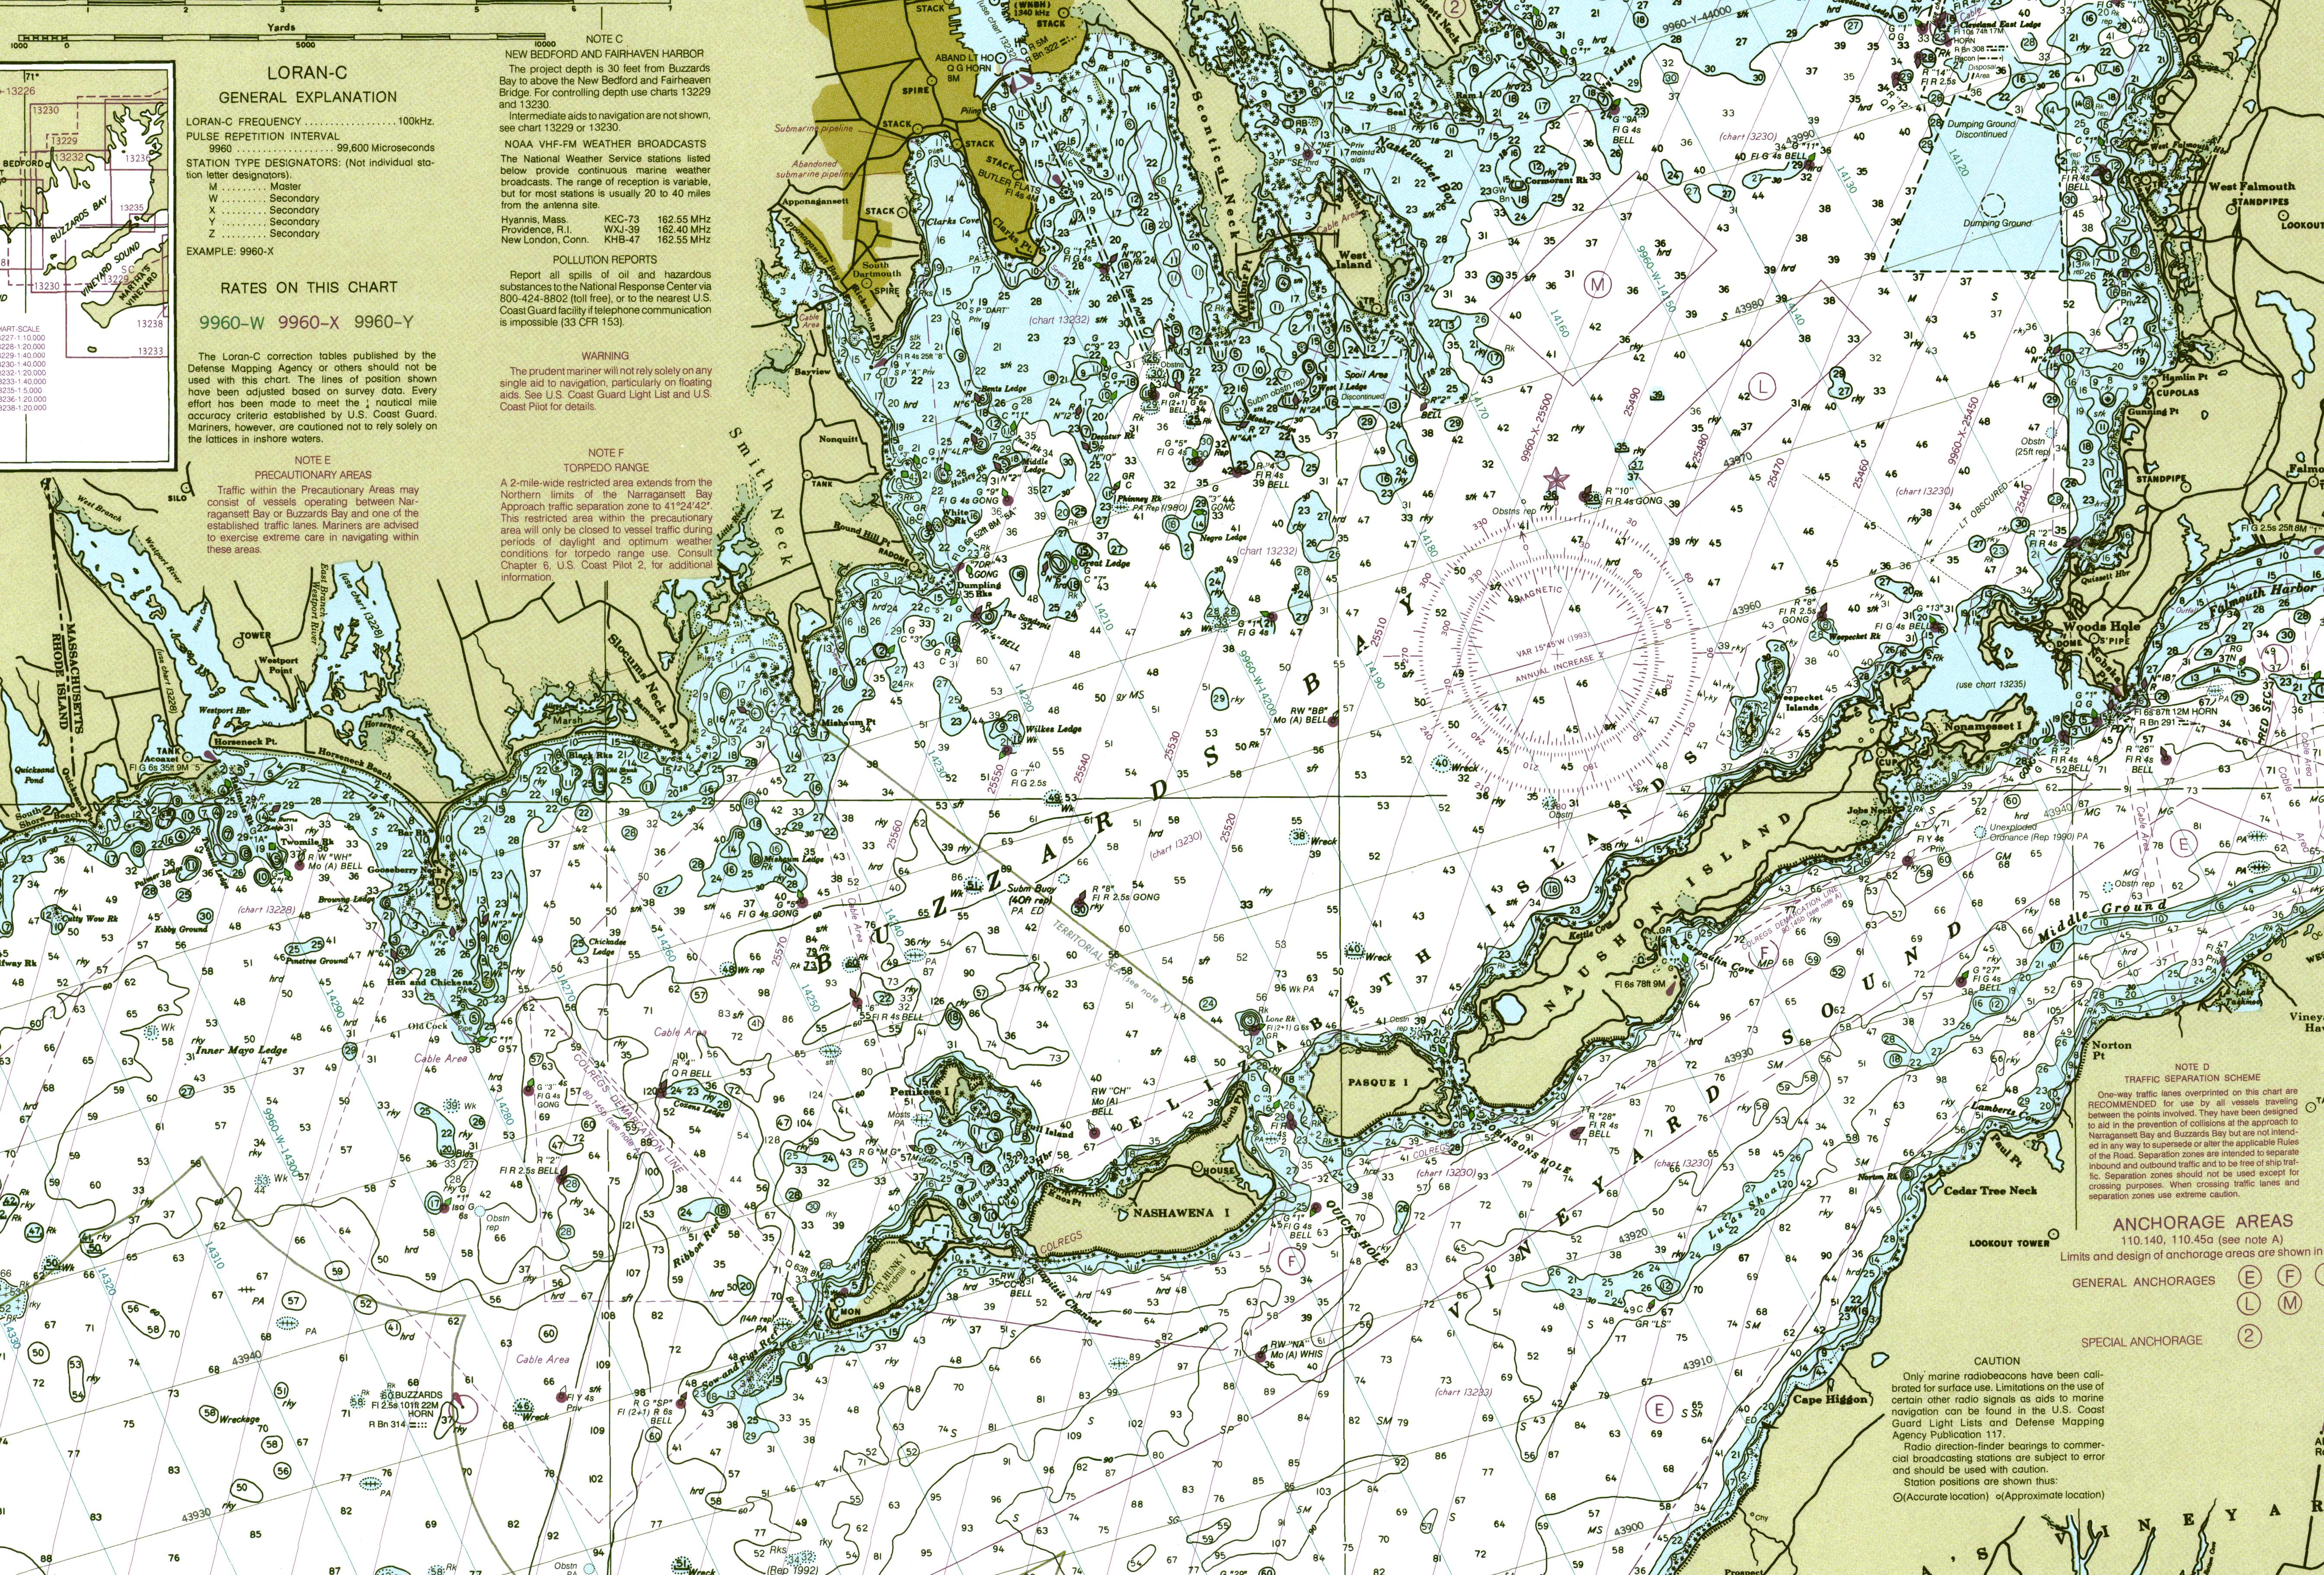 Nautical charts buzzards bay national estuary program click here to open a screensize 68 wide x 48 tall version 33 mb version of this map geenschuldenfo Gallery